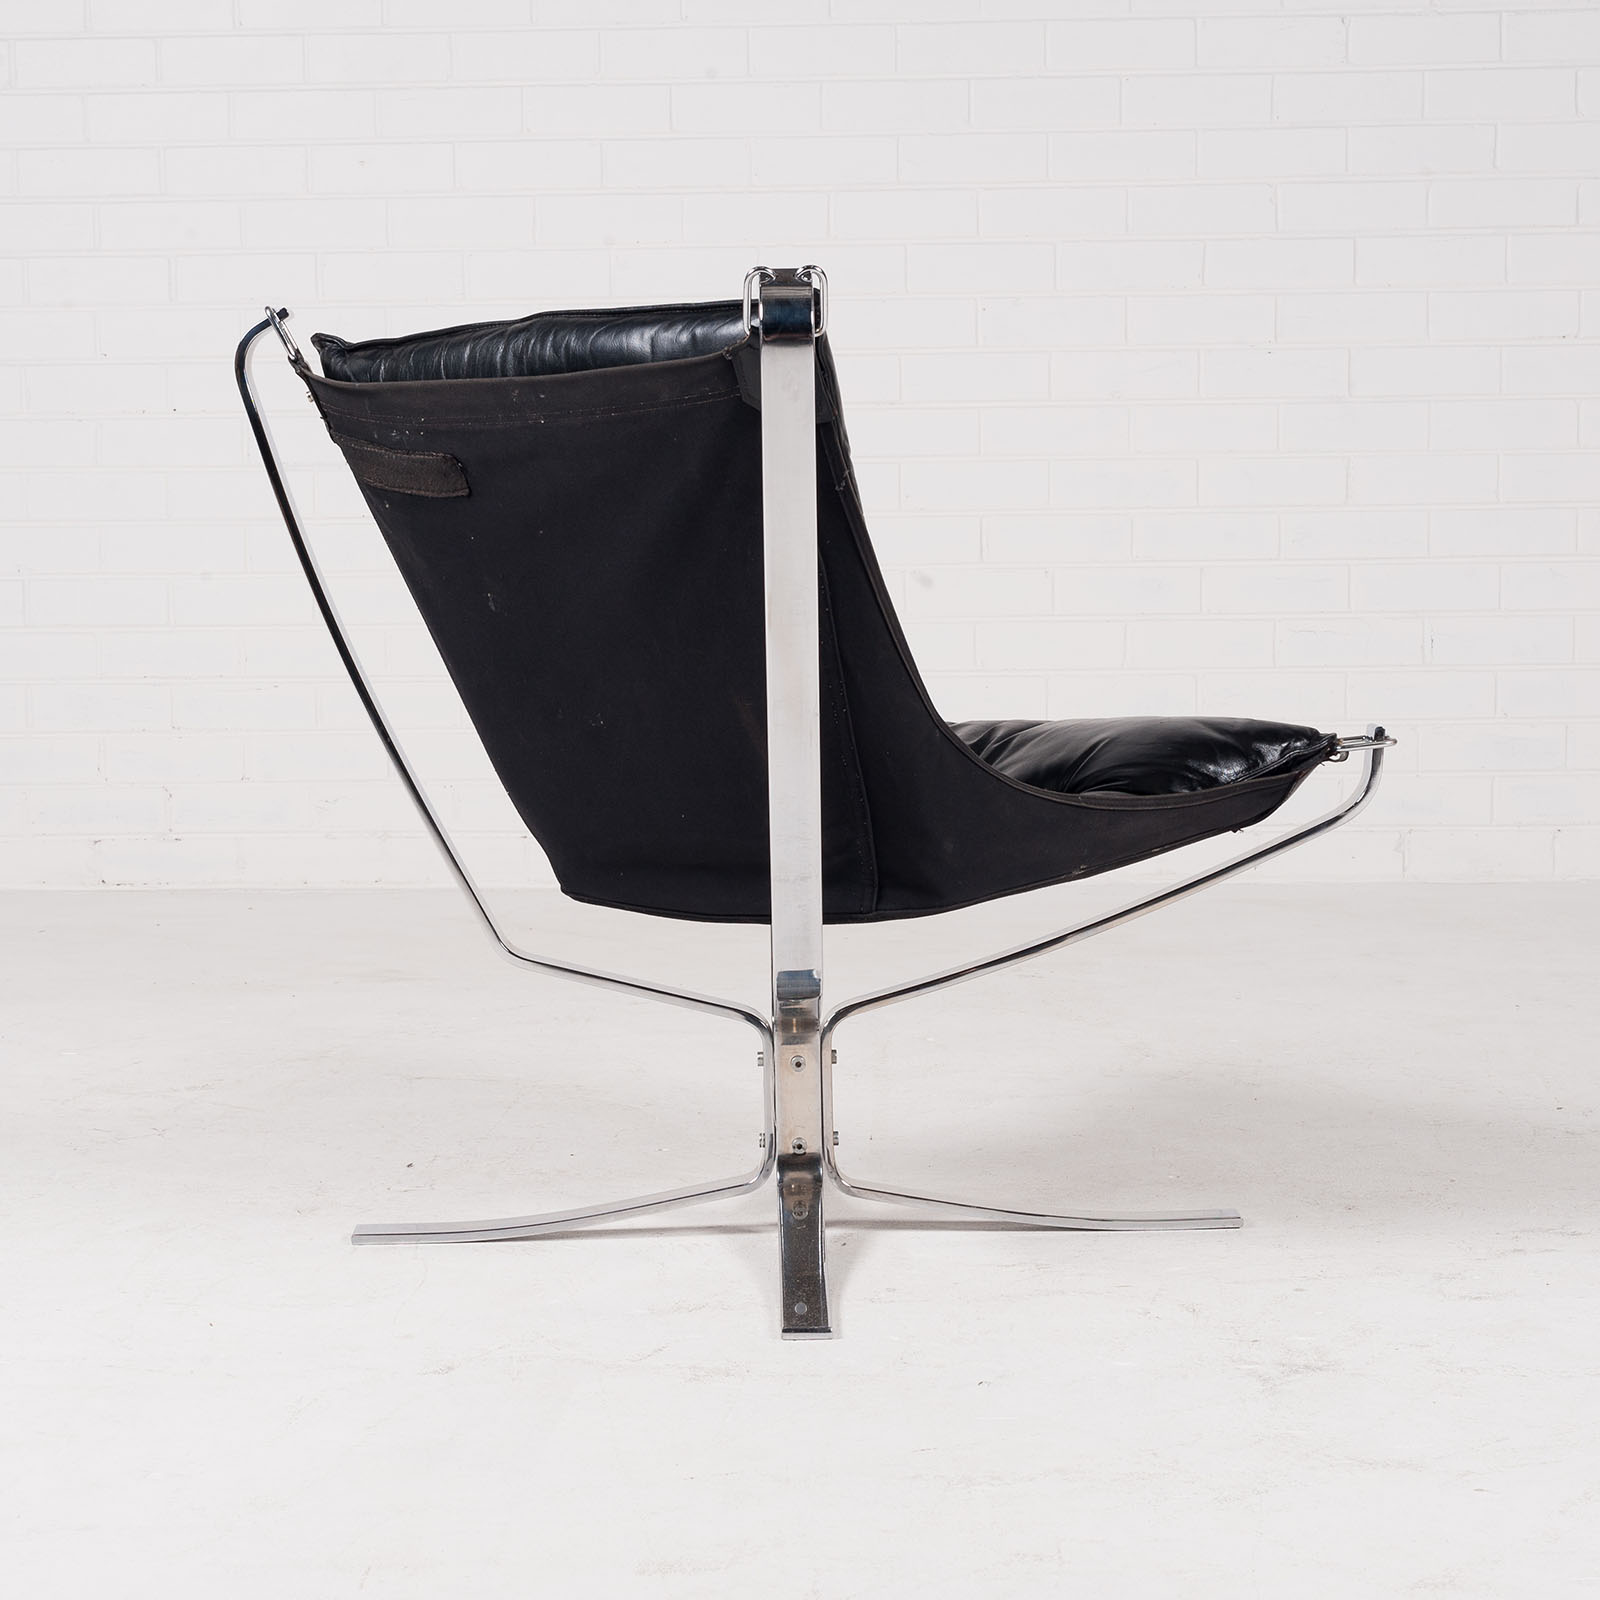 Low Back Falcon Armchair By Sigurd Resell For Vatne Mobler In Black Leather With Chrome Frame 1960s Denmark 04